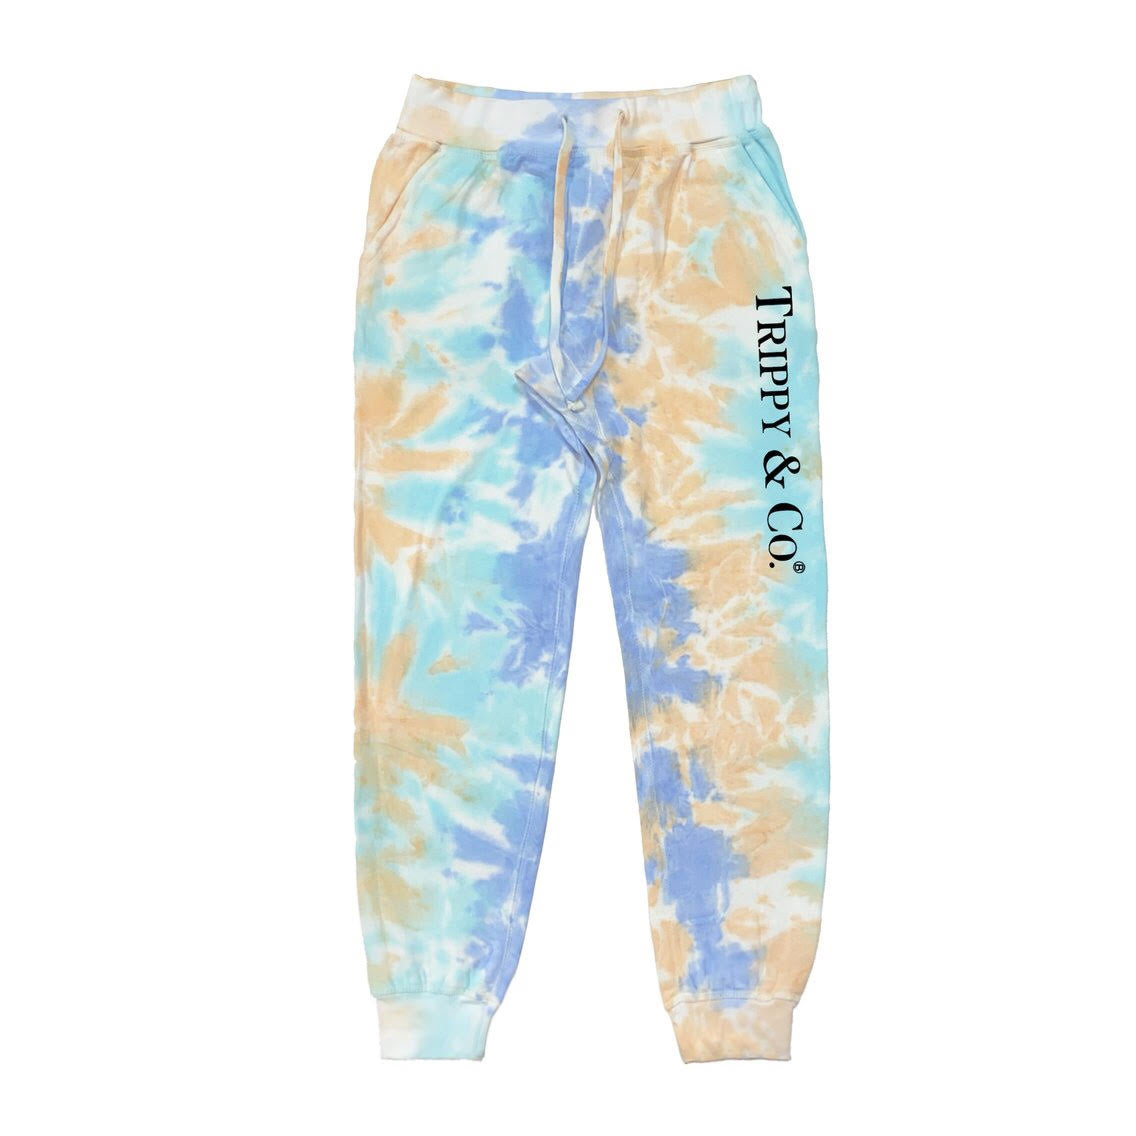 TRIPPY & CO TIE-DYE SWEATPANTS